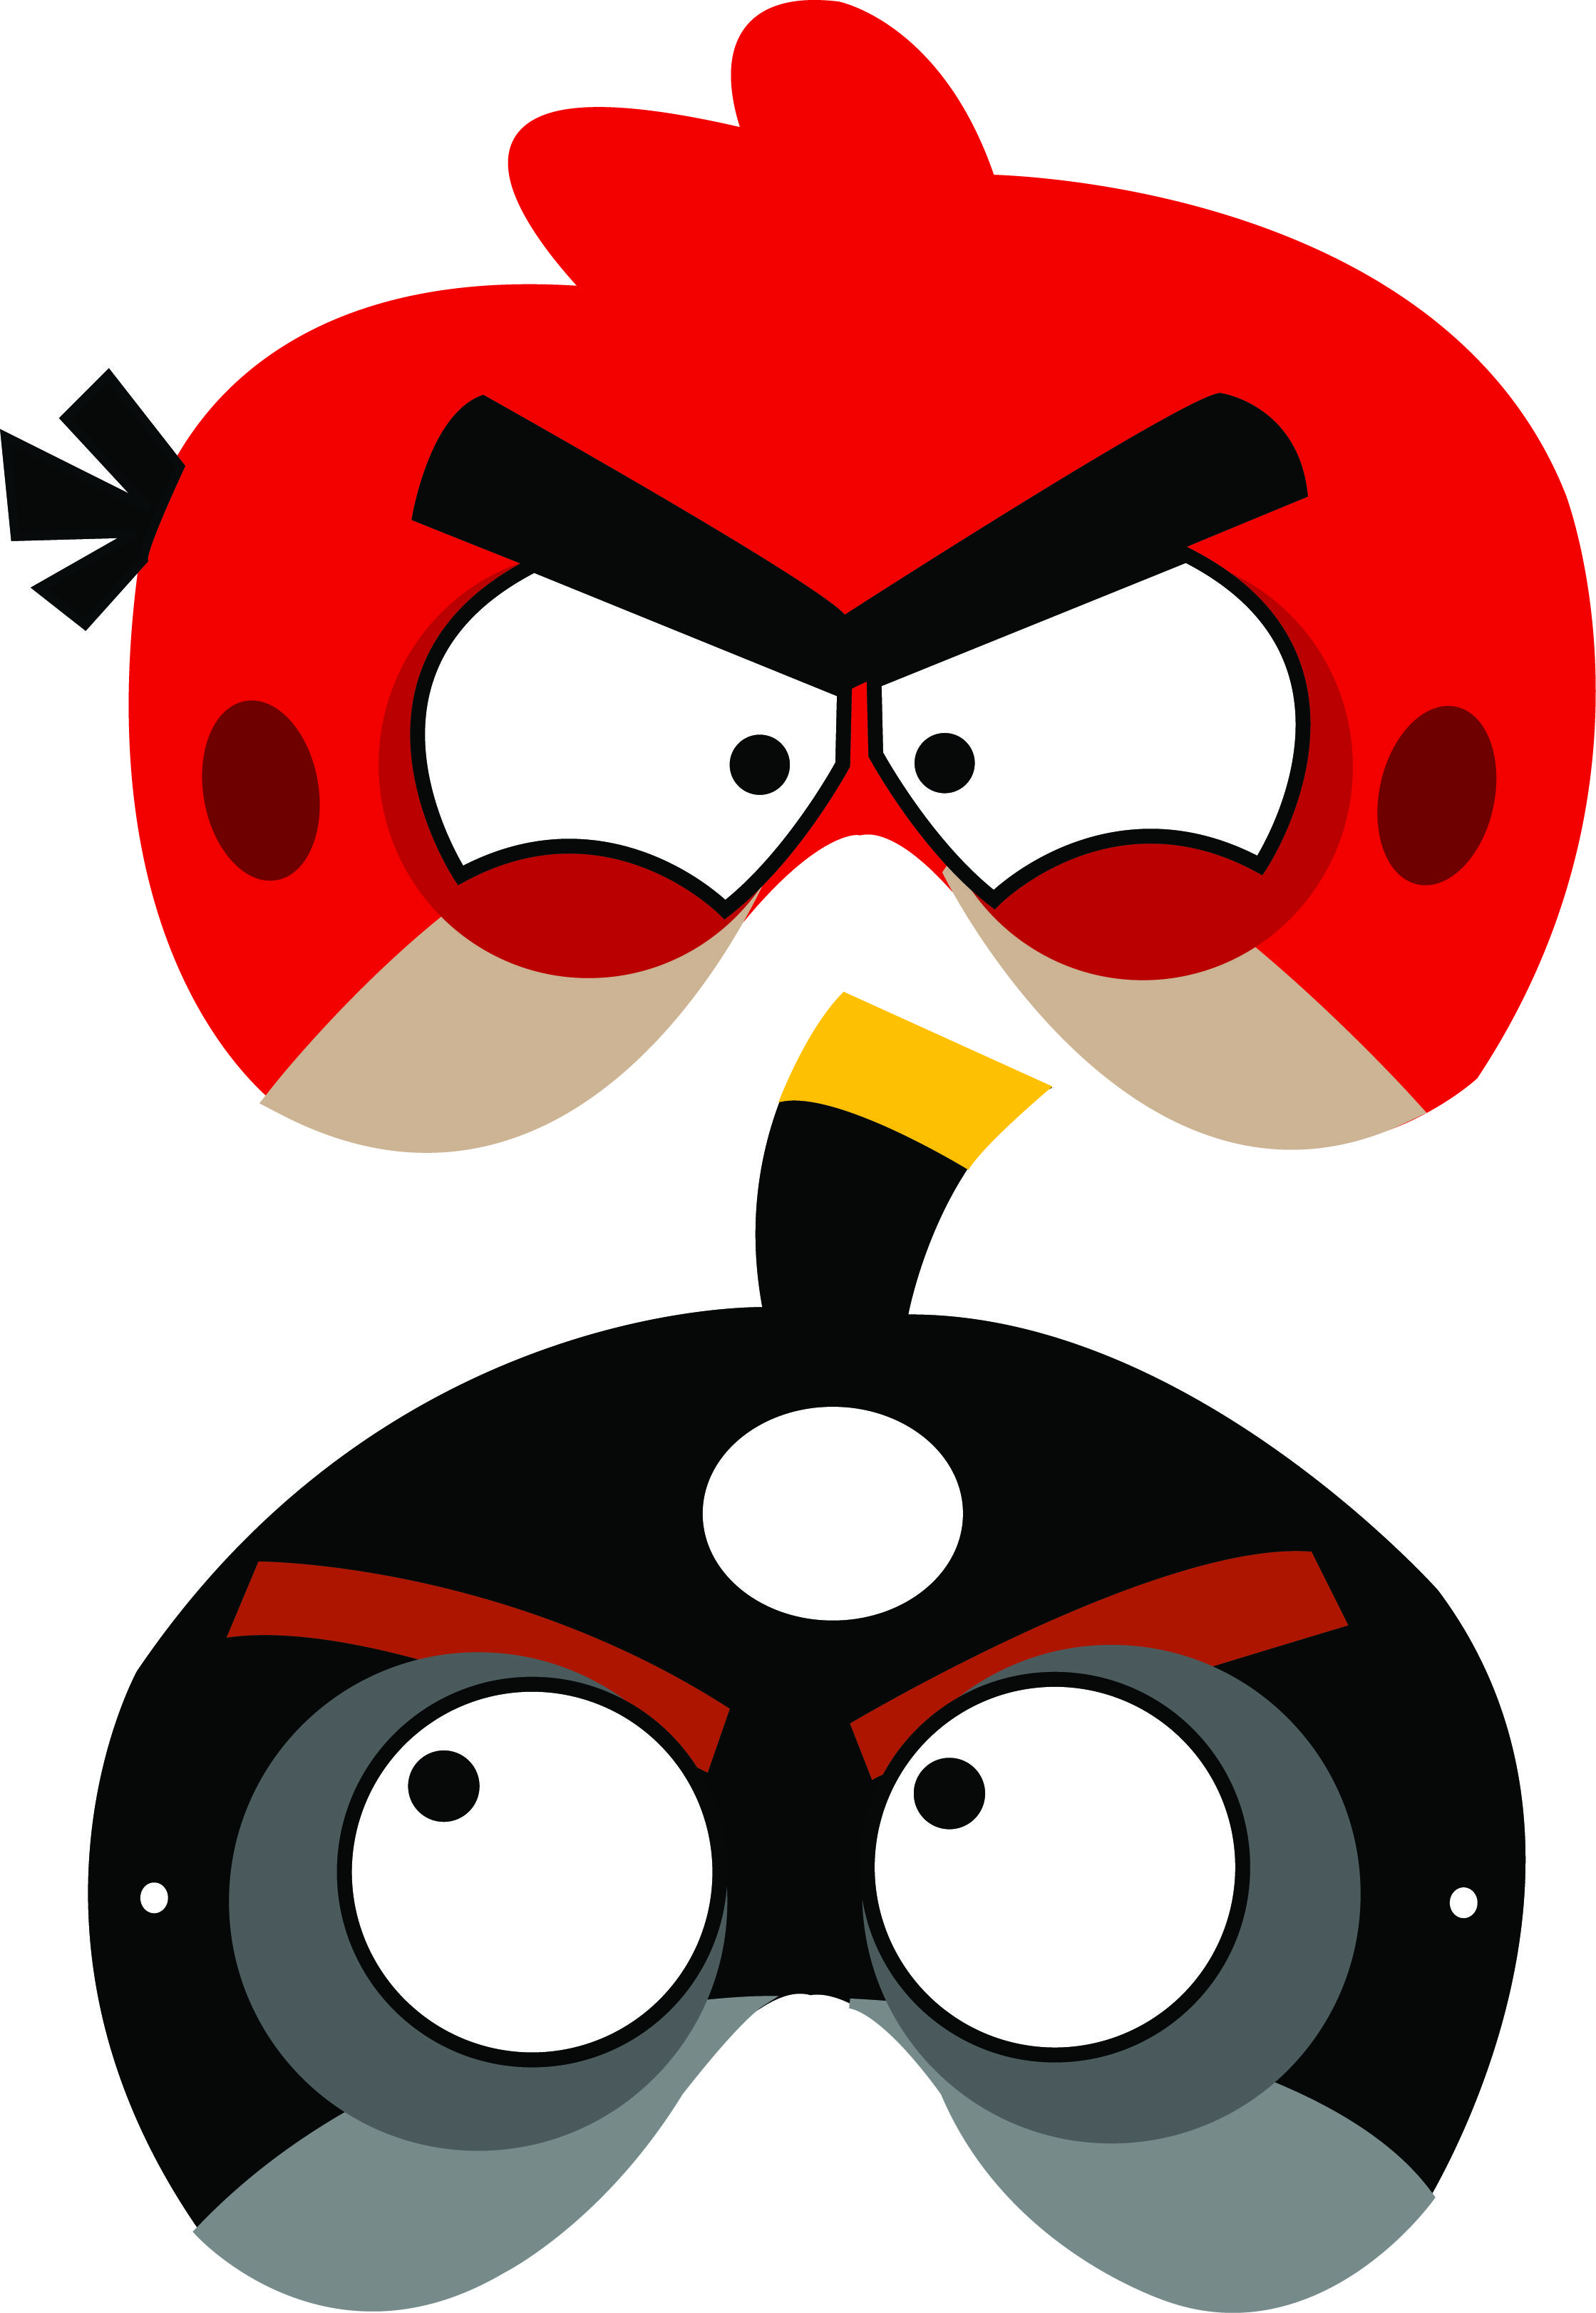 Angry Birds Free Printable Masks | Luca's B-Day Party | Pinterest - Free Printable Masks